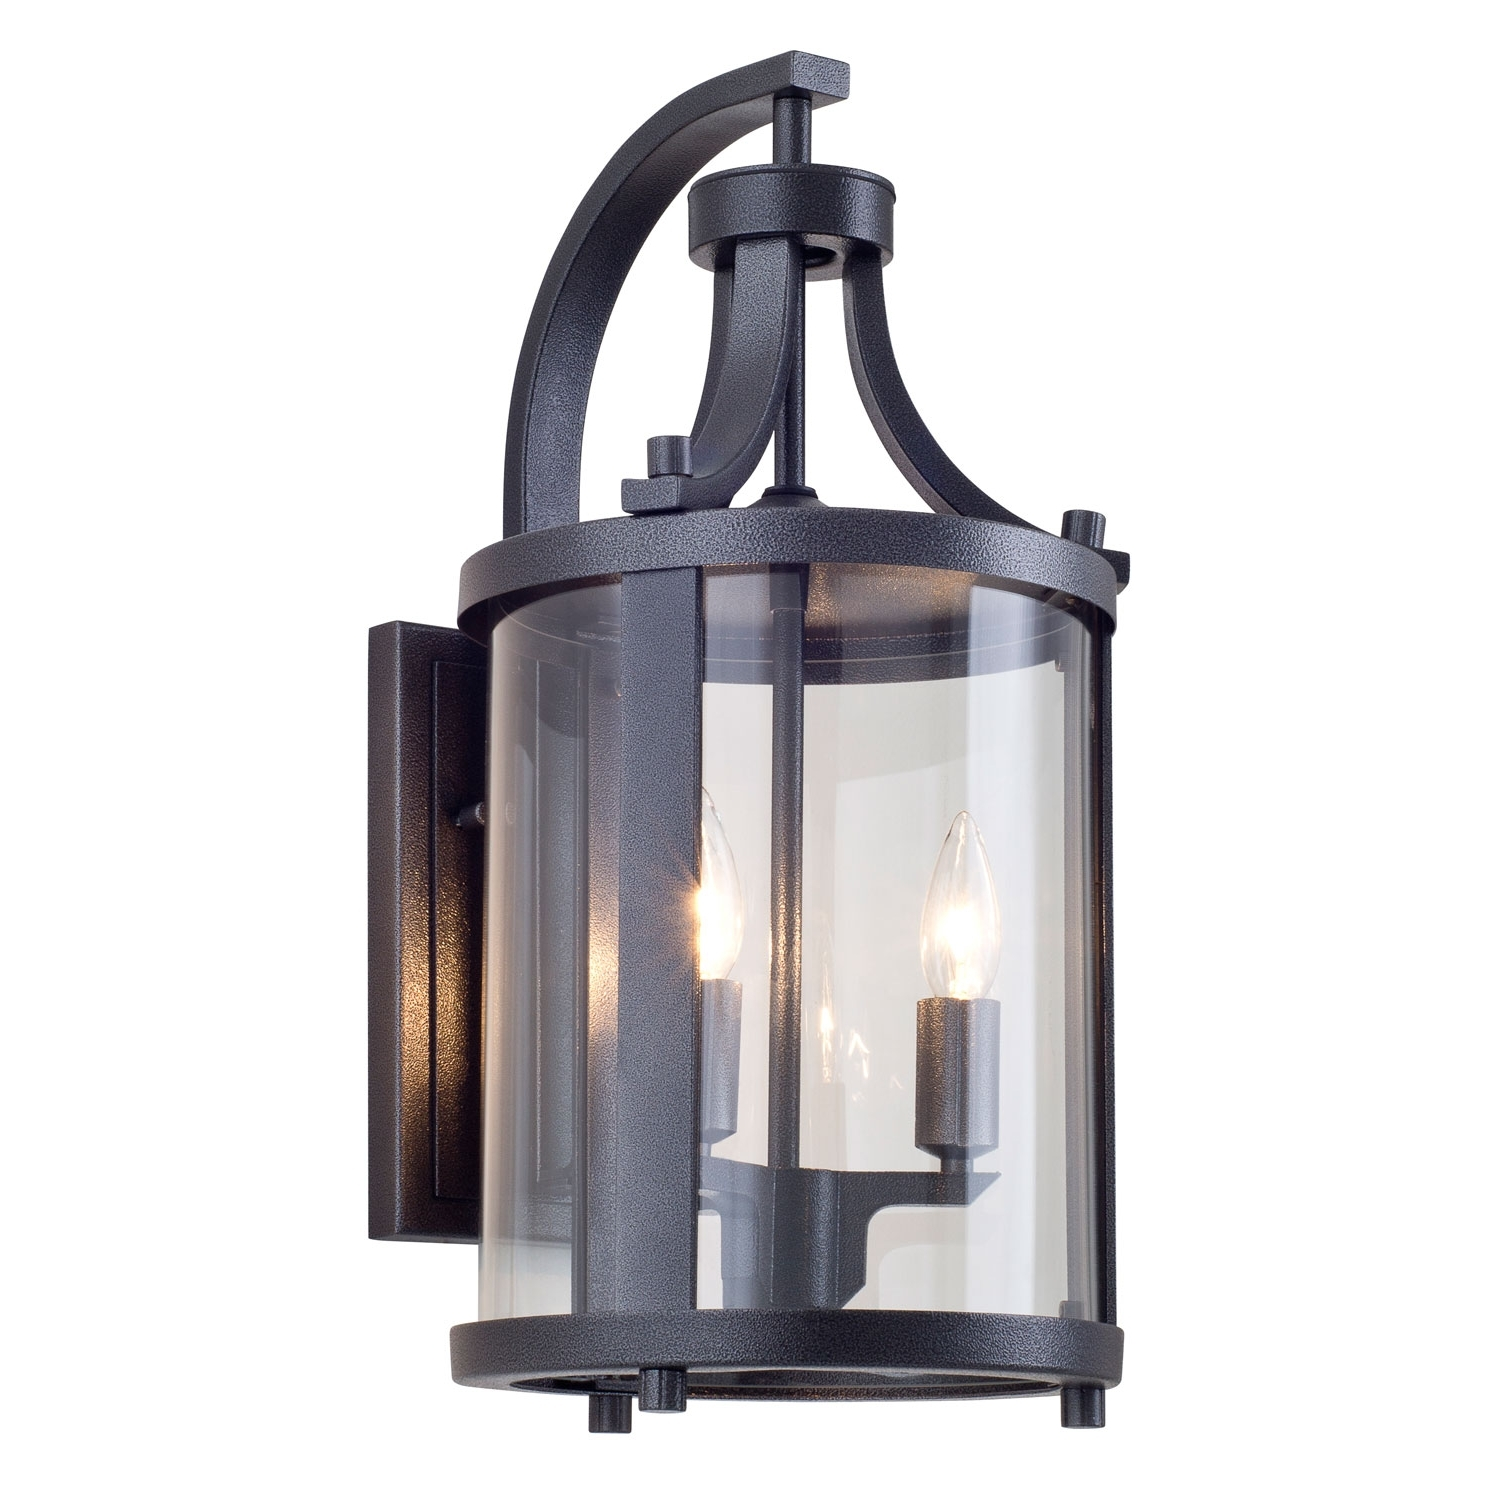 Outdoor Wall Lighting On Sale (View 19 of 20)